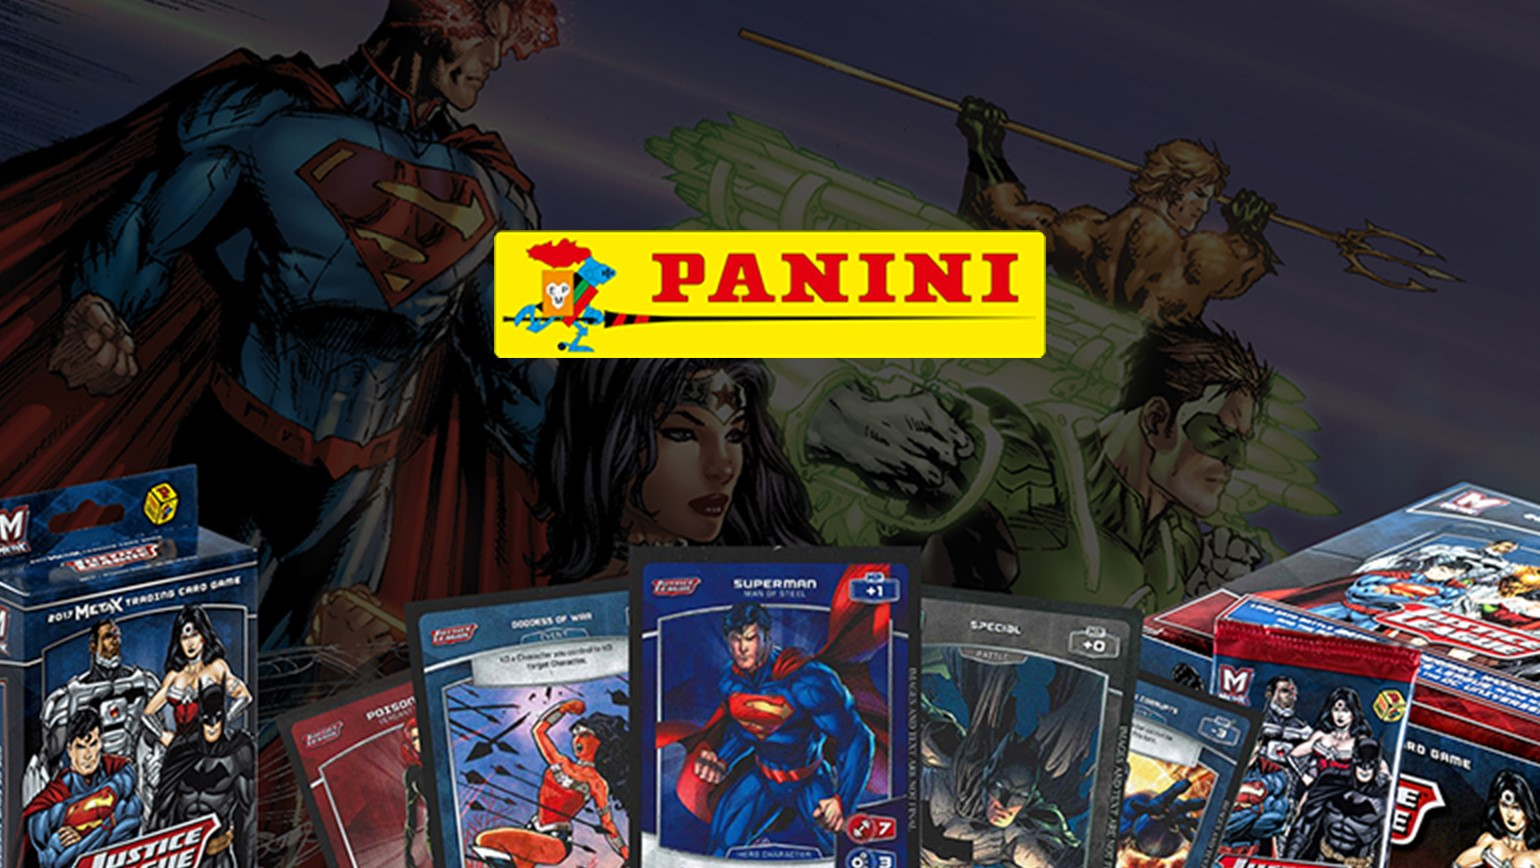 Panini Games' MetaX Available to List